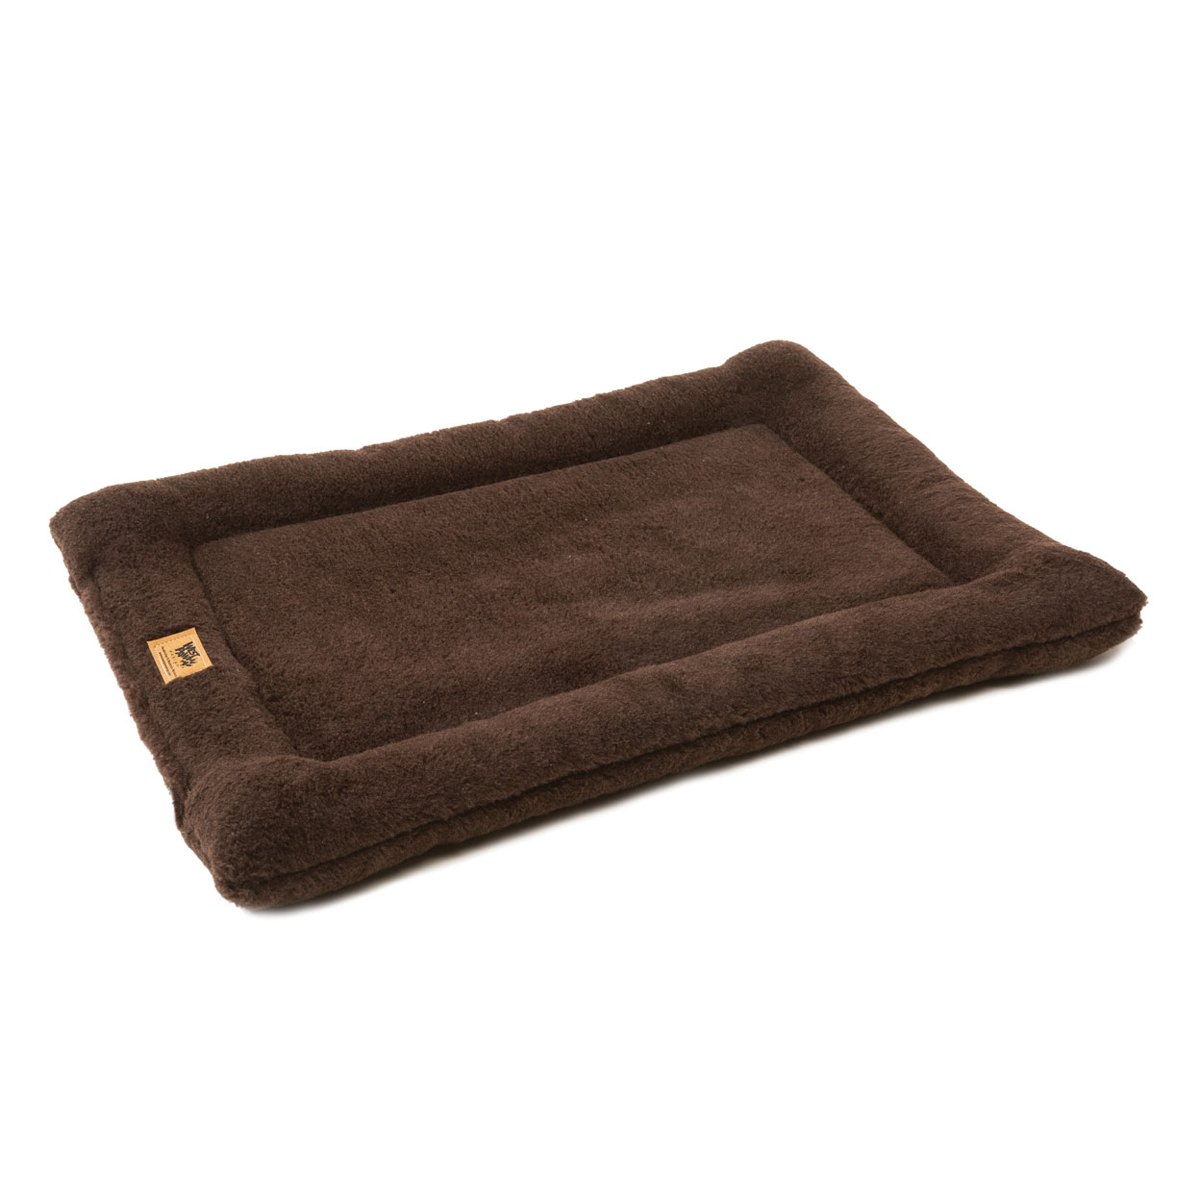 Montana Nap Pet Bed by West Paw Design - Chocolate